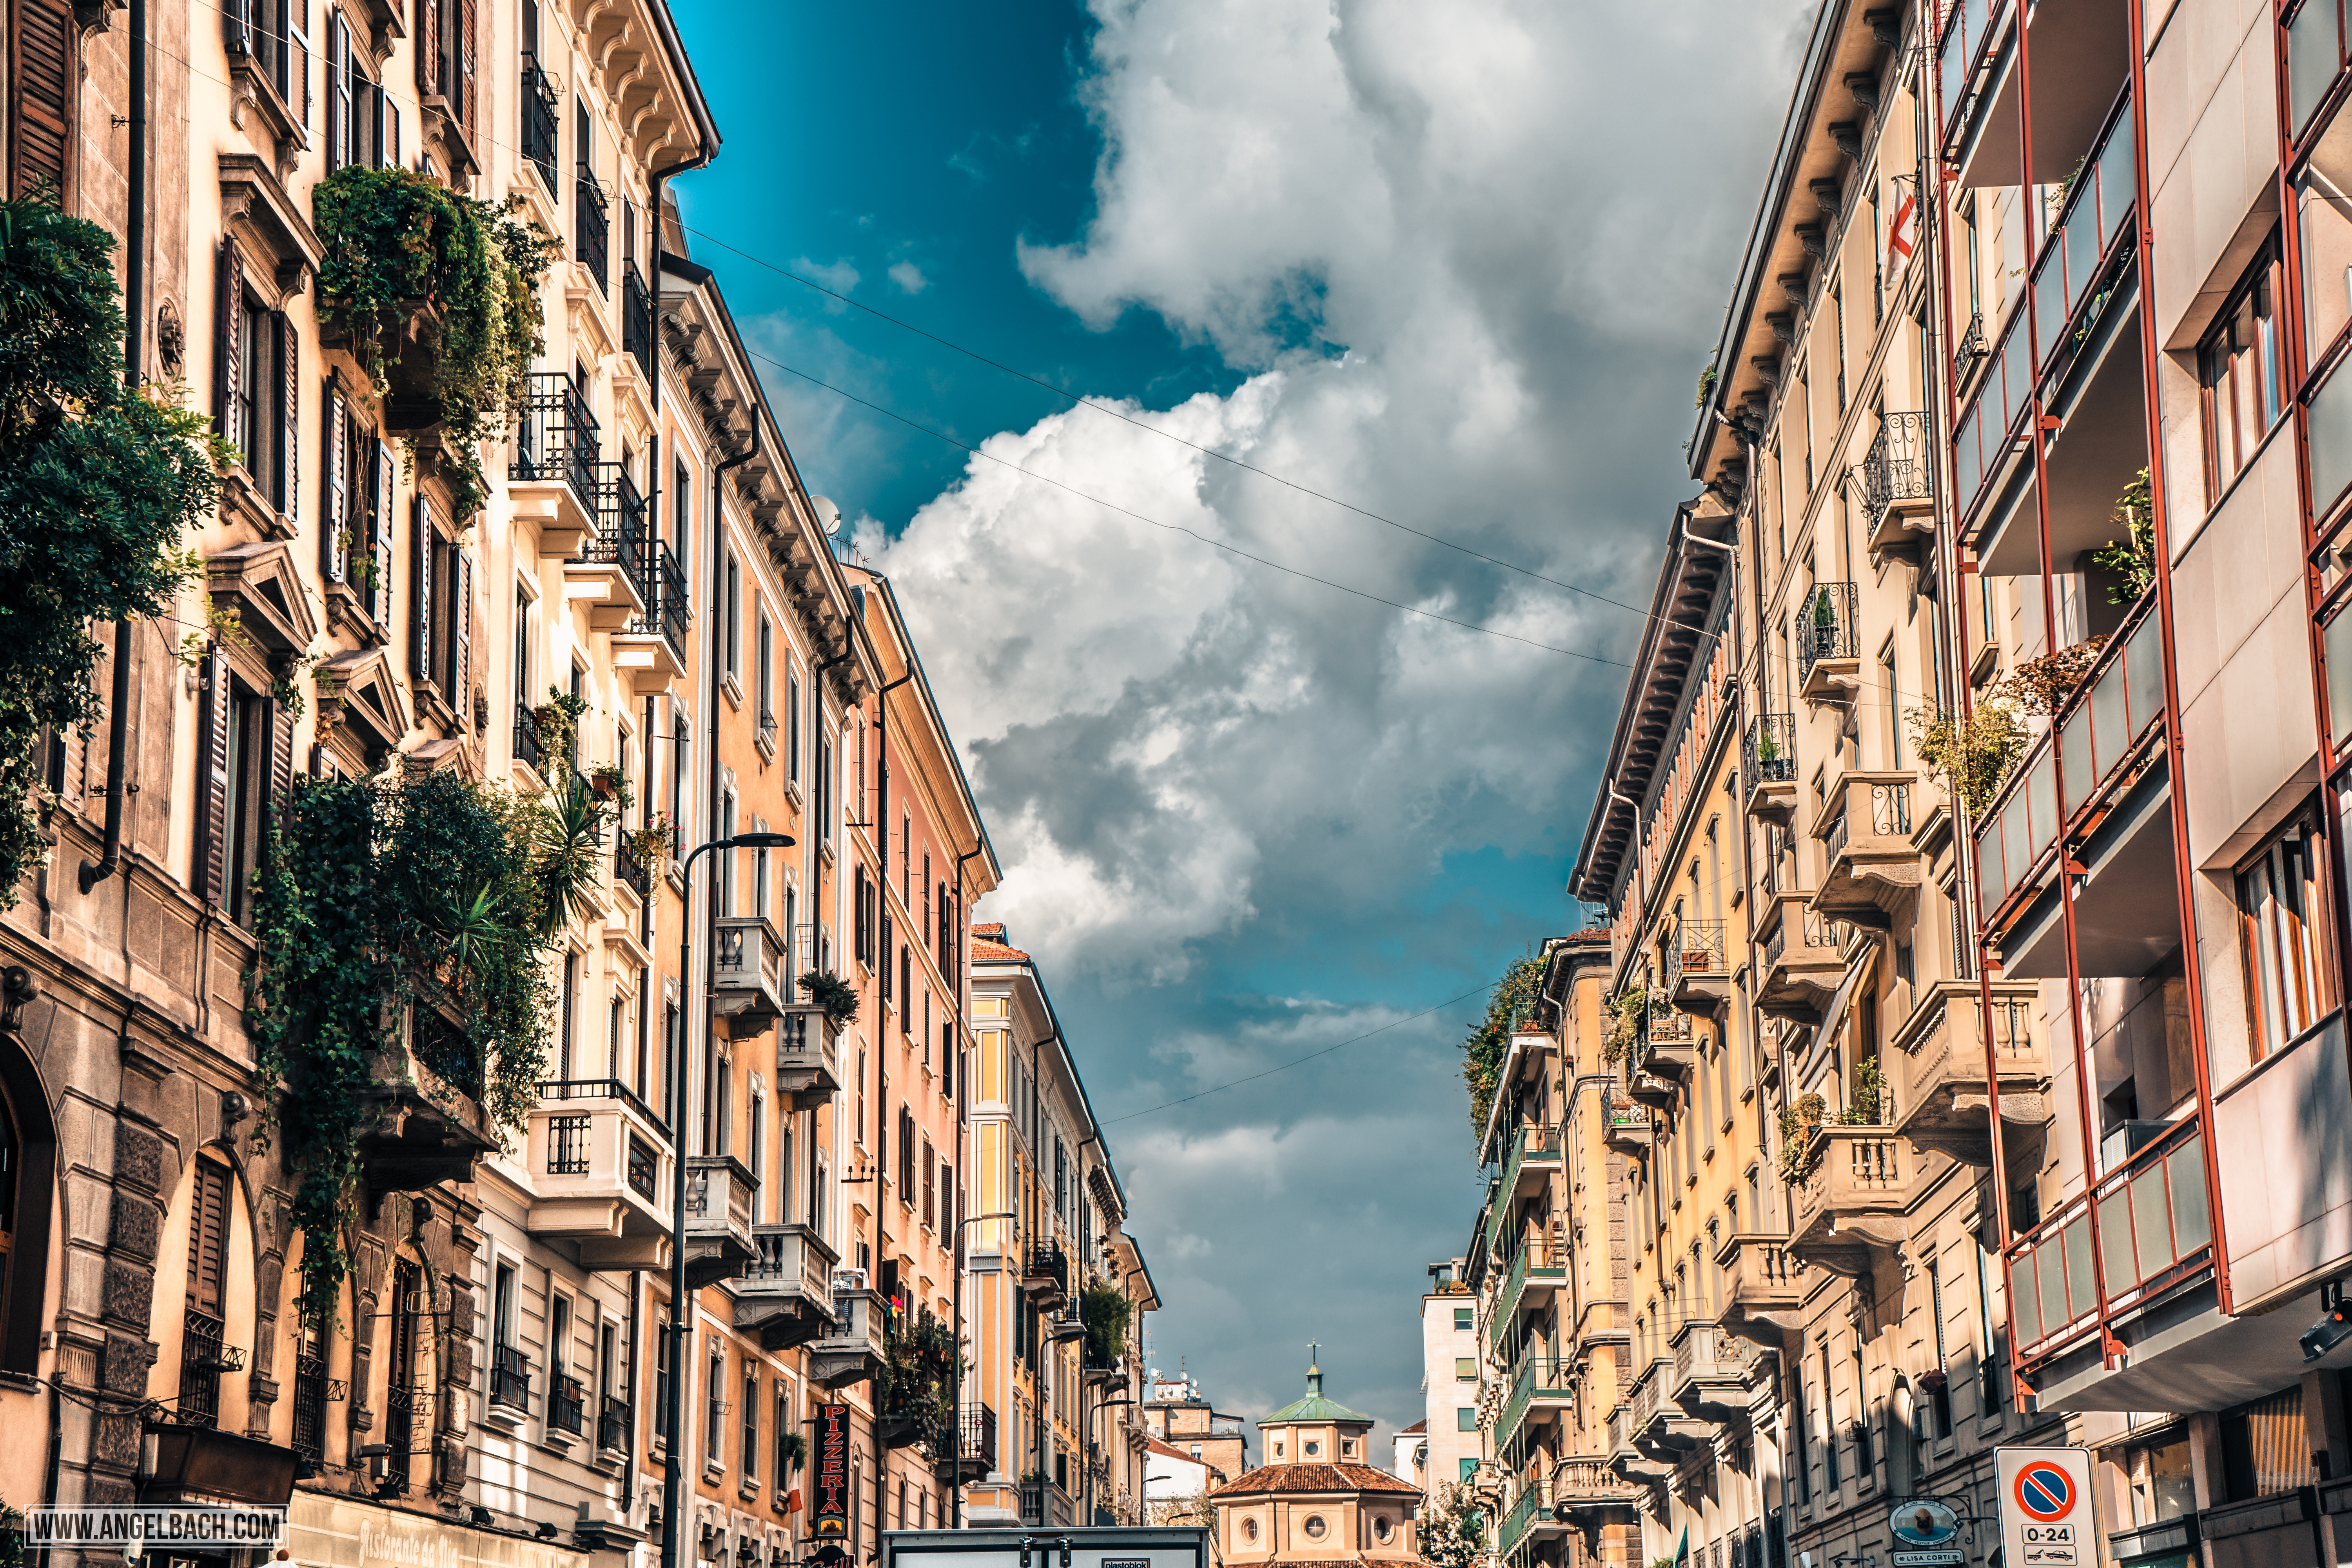 Milan, Architecture, Leading lines, Photography, Italy, Cityscape